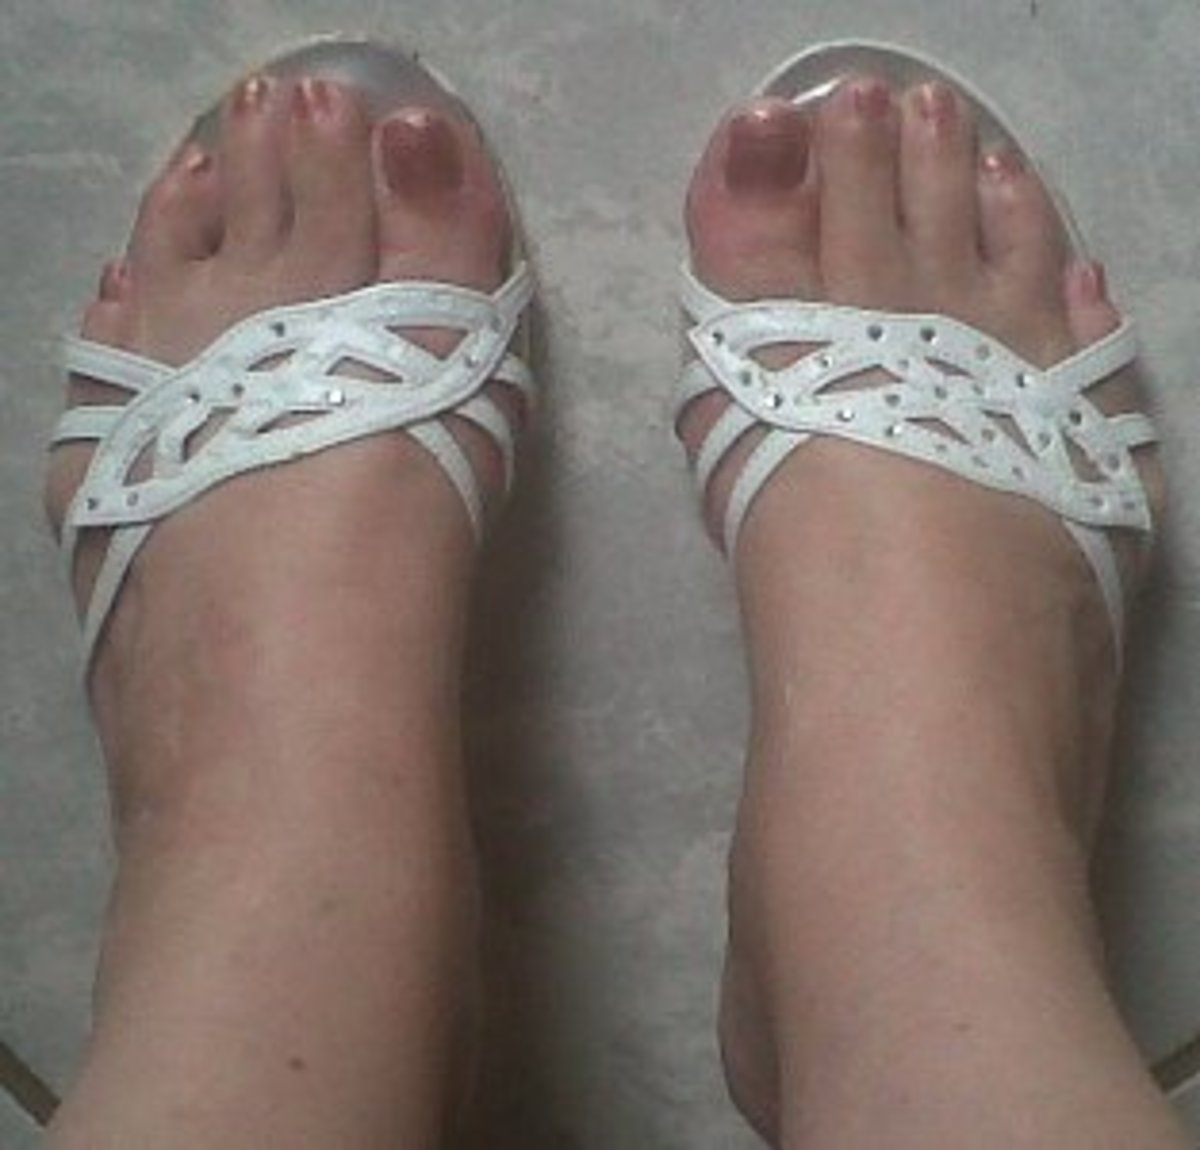 In pretty, well-fitting shoes my feet look normal.